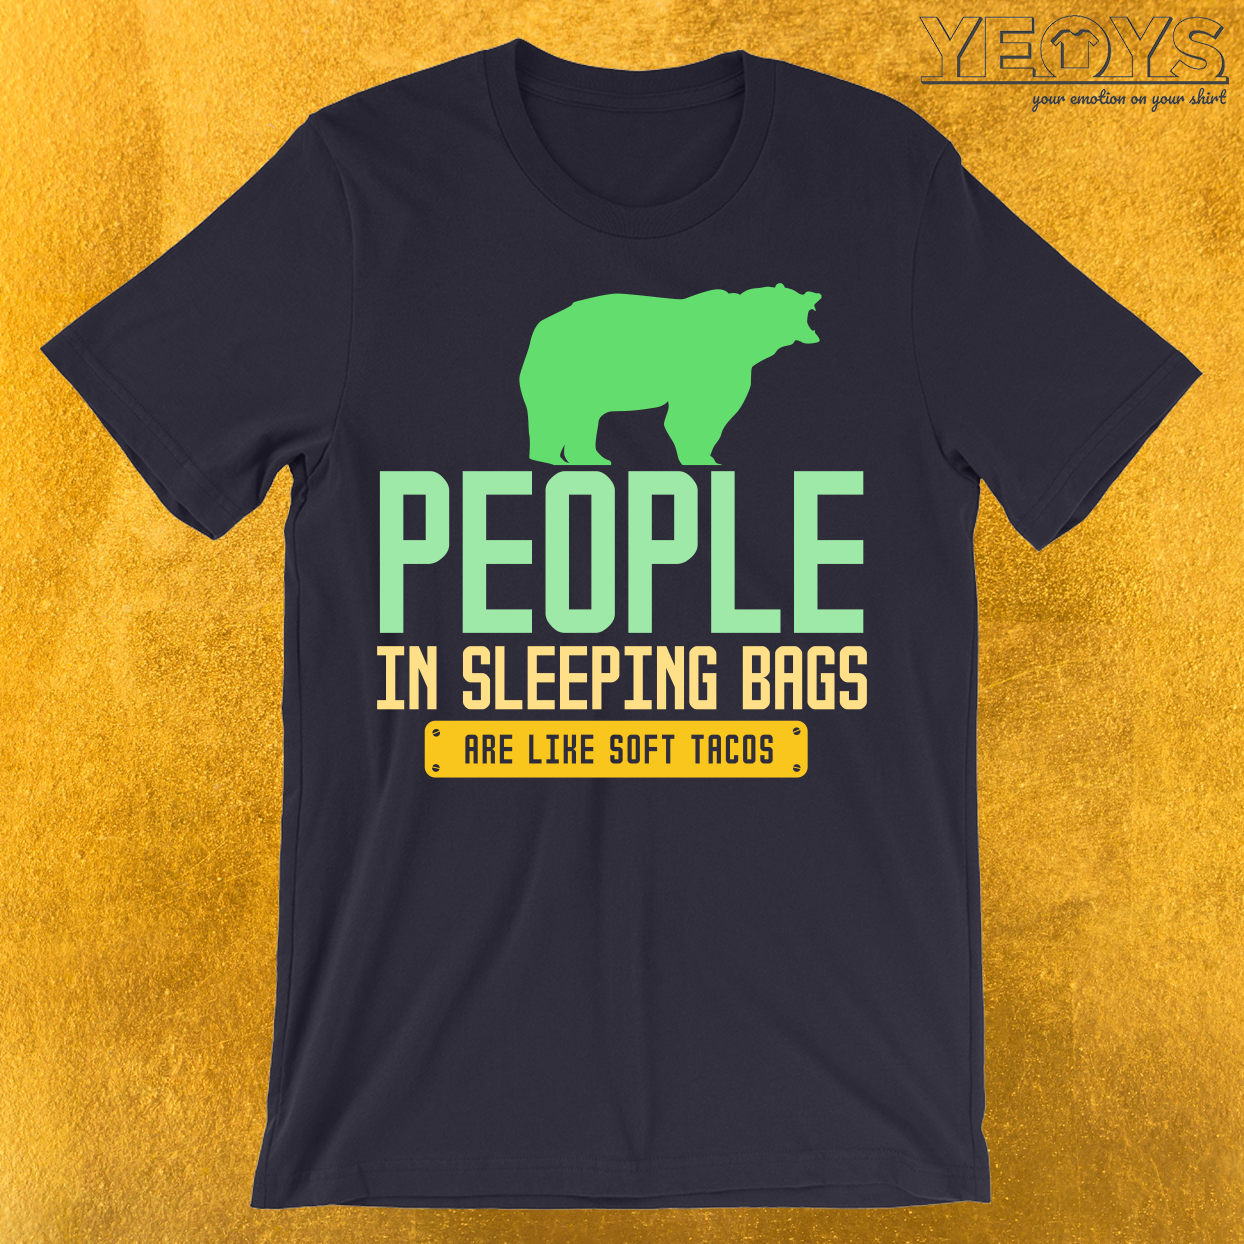 People In Sleeping Bags Are Like Soft Tacos T-Shirt